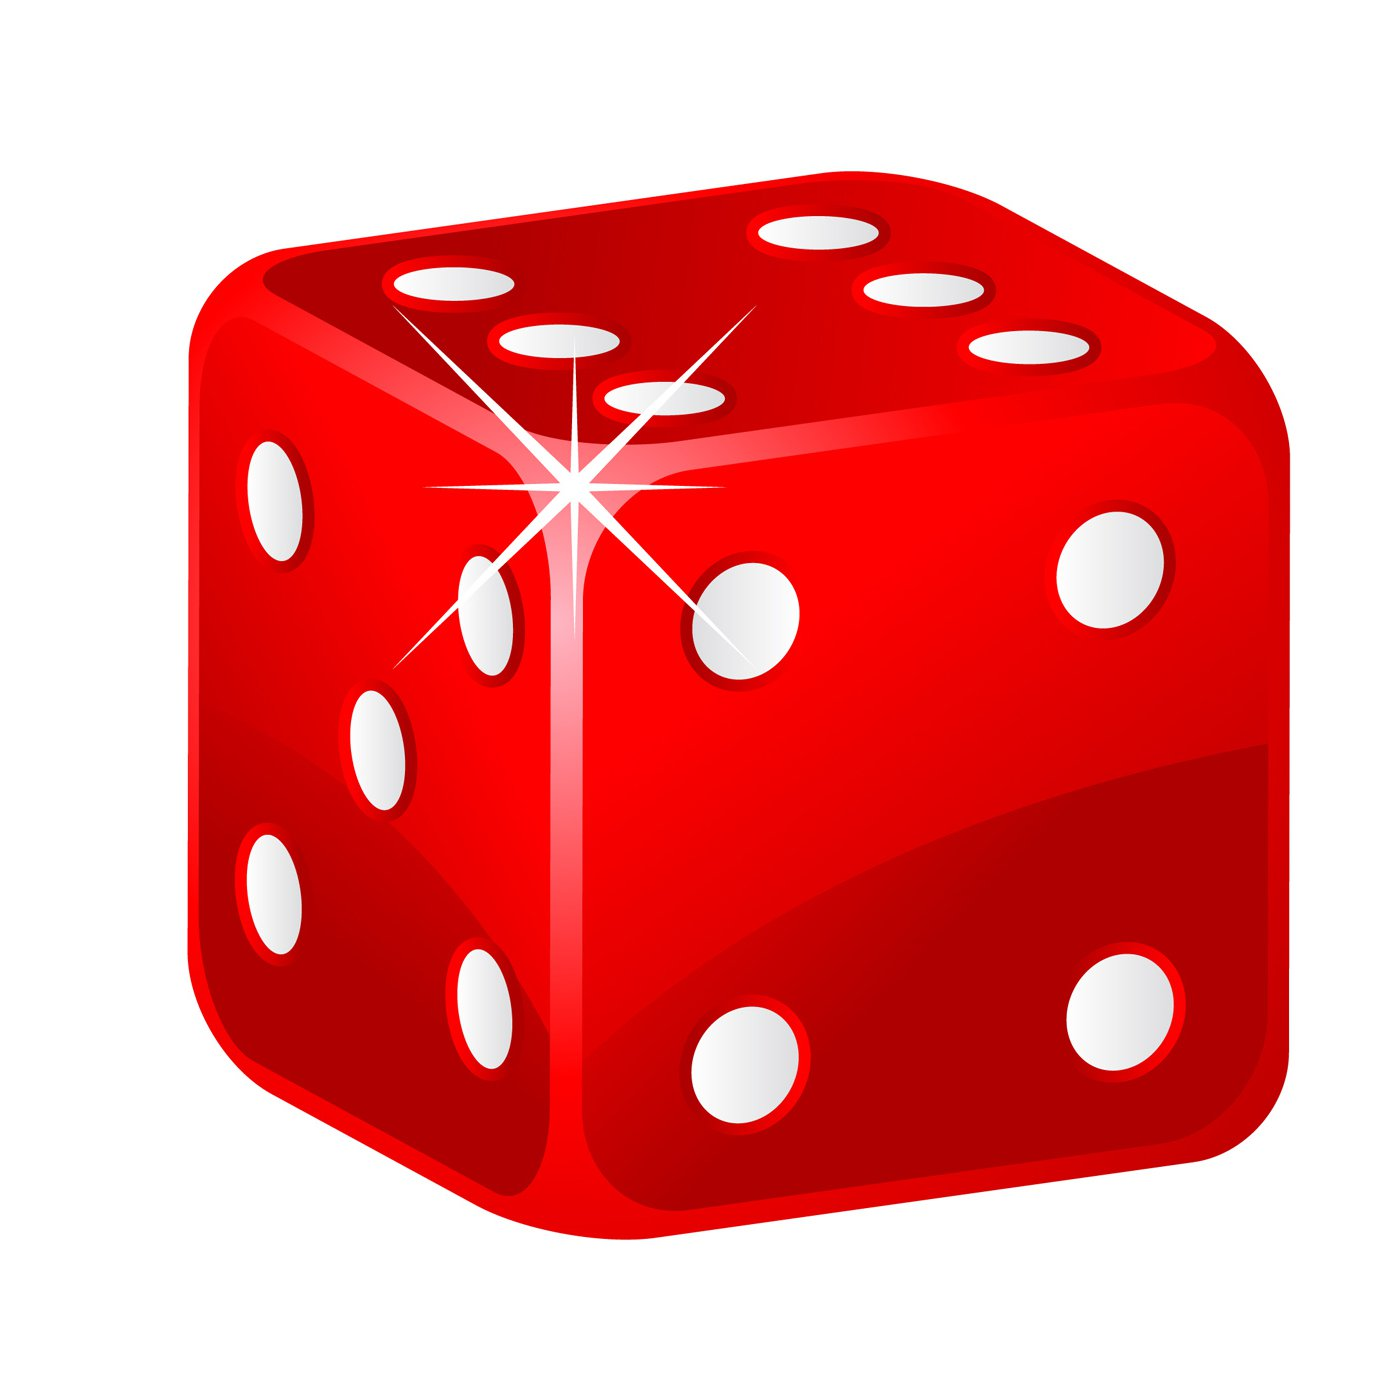 Free Dice Faces Download Free Clip Art Free Clip Art On